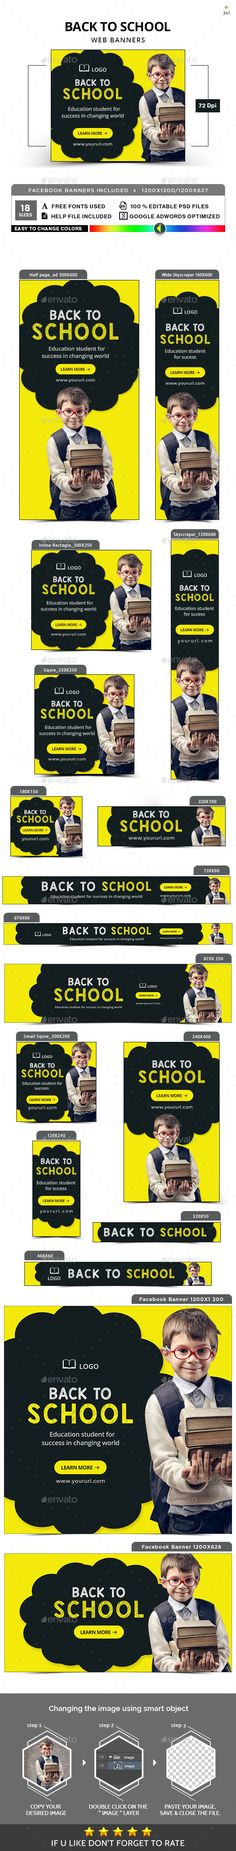 #Back #to #School #Banner #Template - Banners & Ads Web Elements #design. download: https://graphicriver.net/item/back-to-school-banners/20369004?ref=yinkira